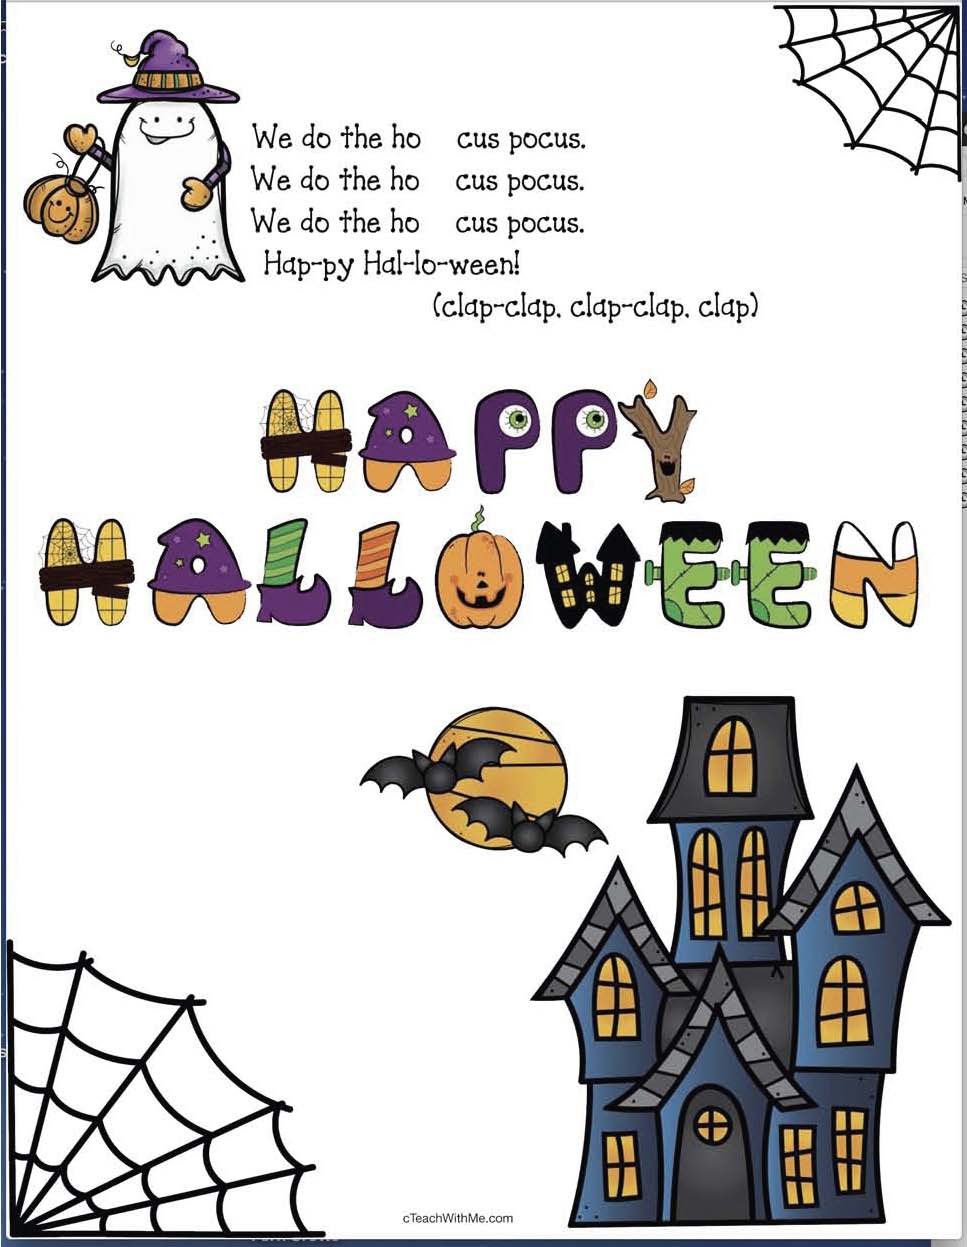 Hocus Pocus Hokey Pokey, Hokey Pokey Halloween version, Halloween party day activities, Halloween party day songs